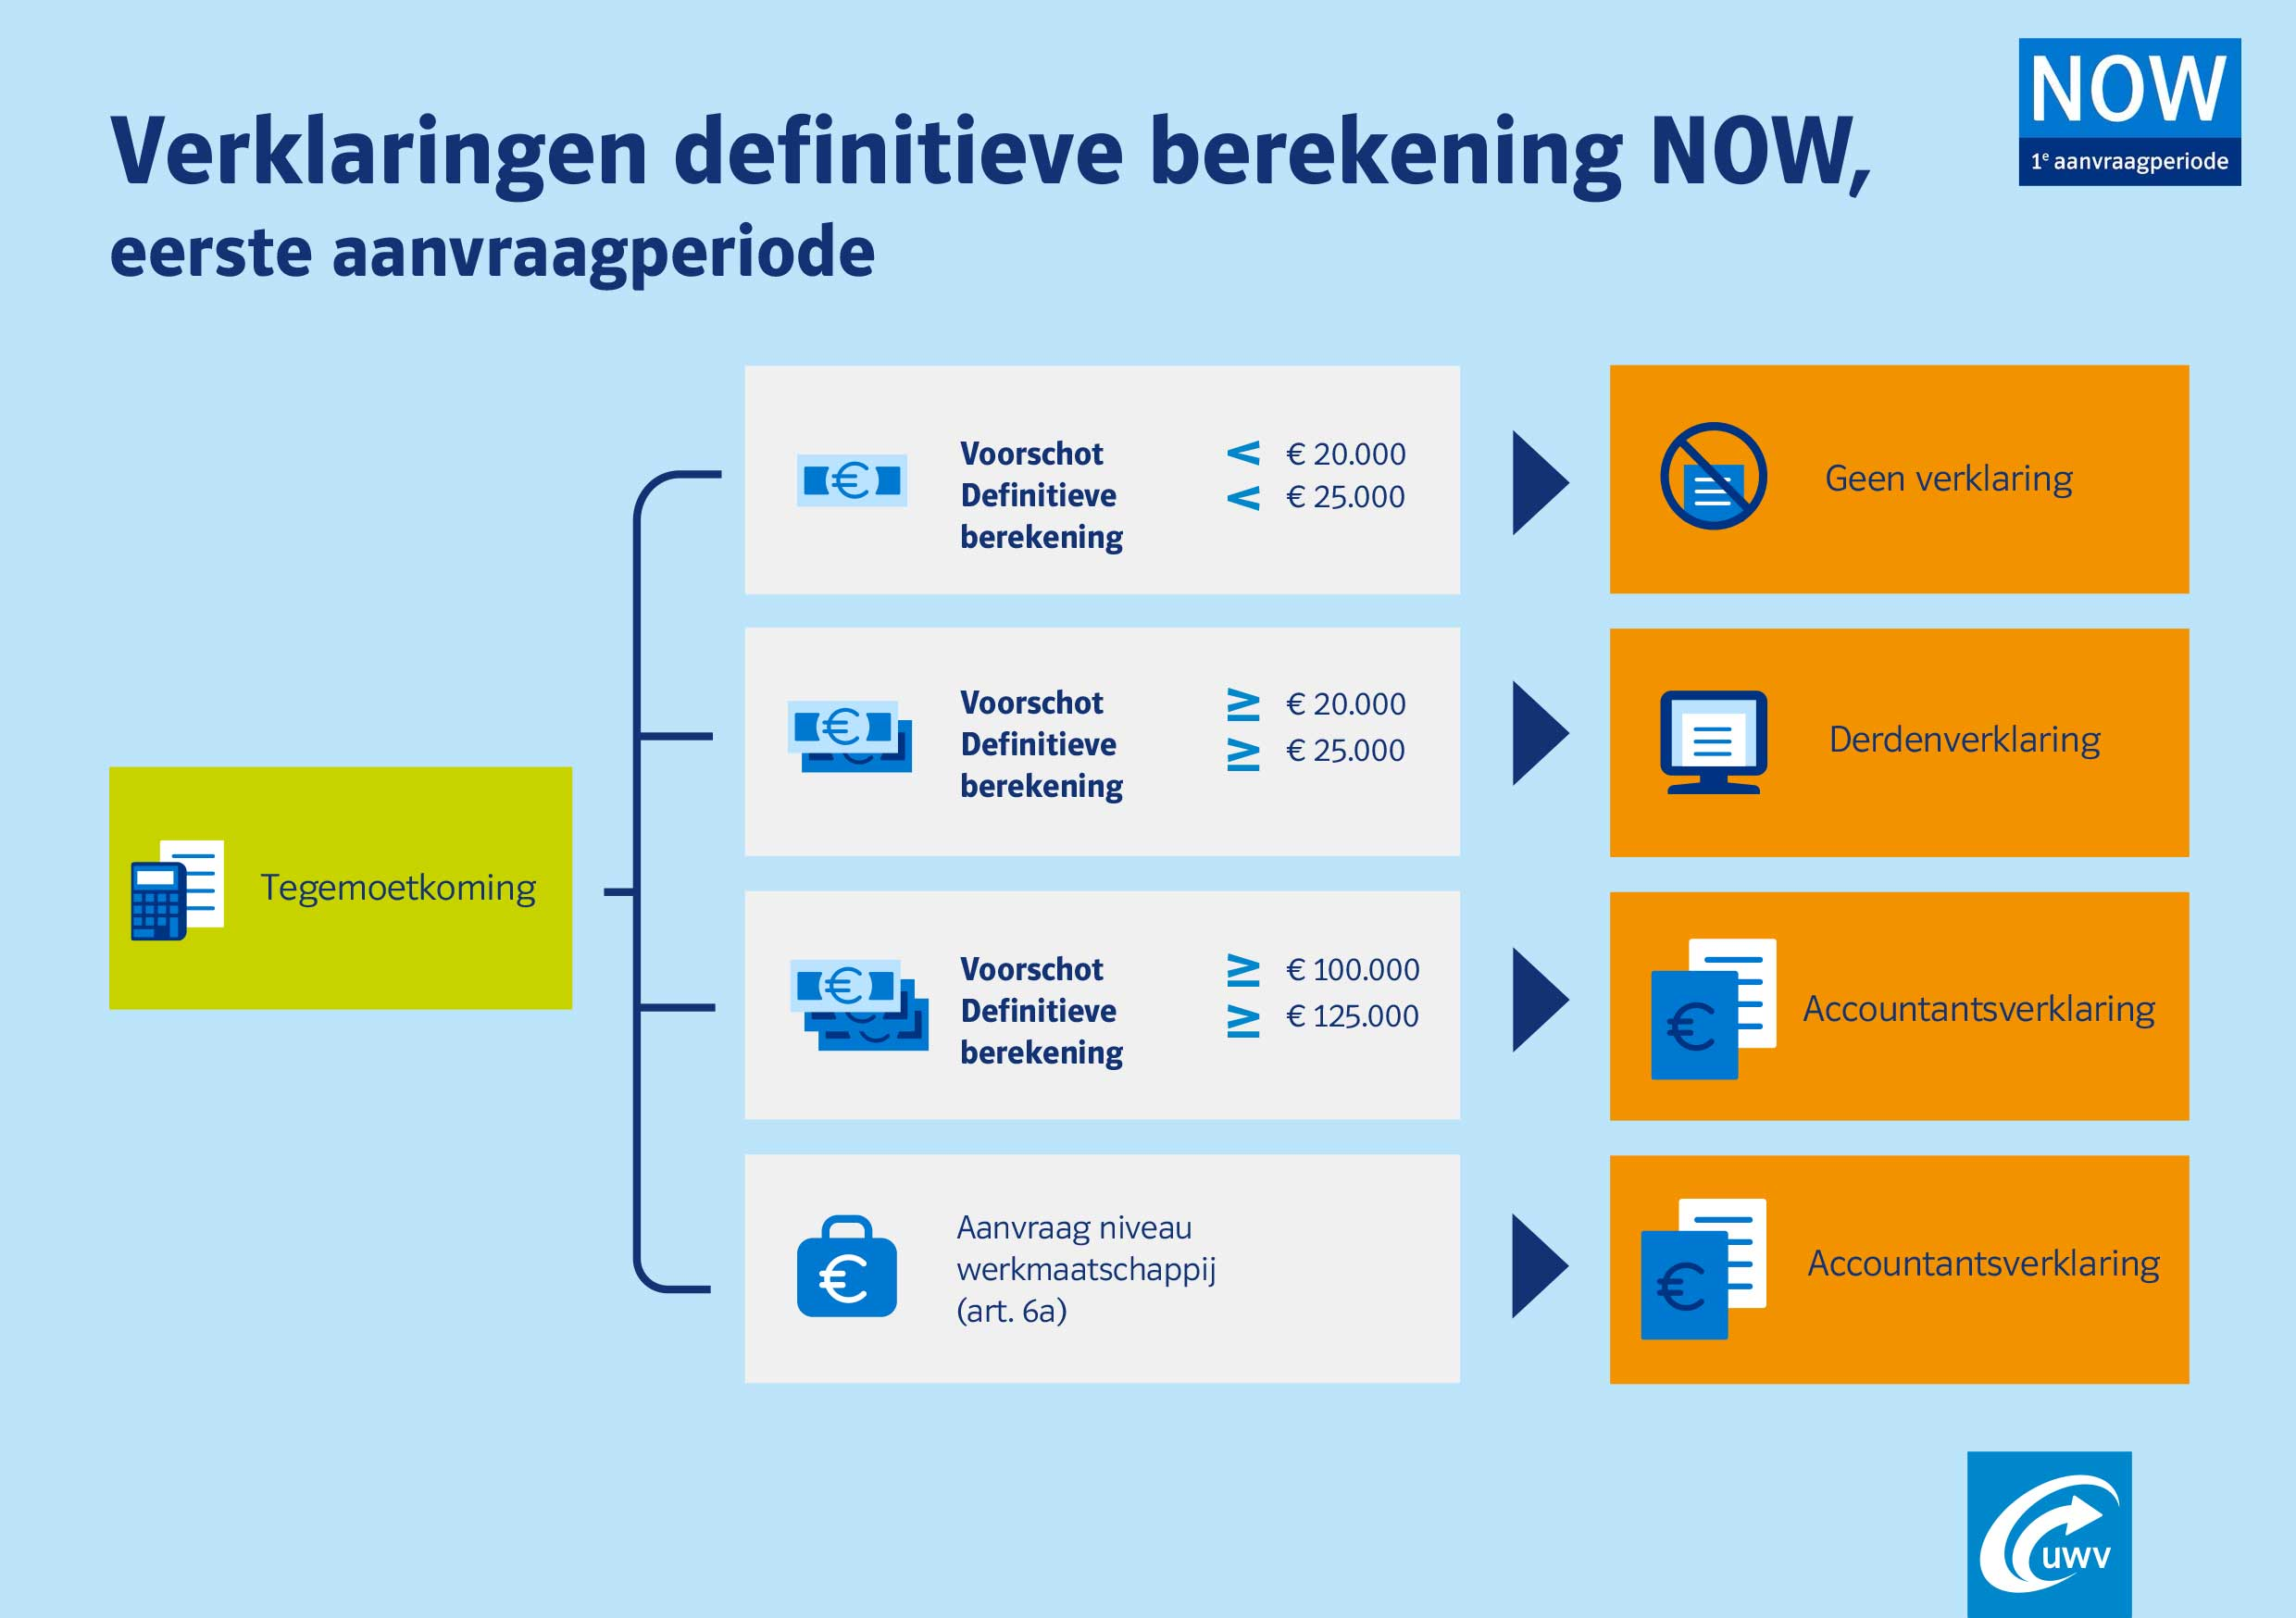 verklaringen-definitieve-berekening-now-1